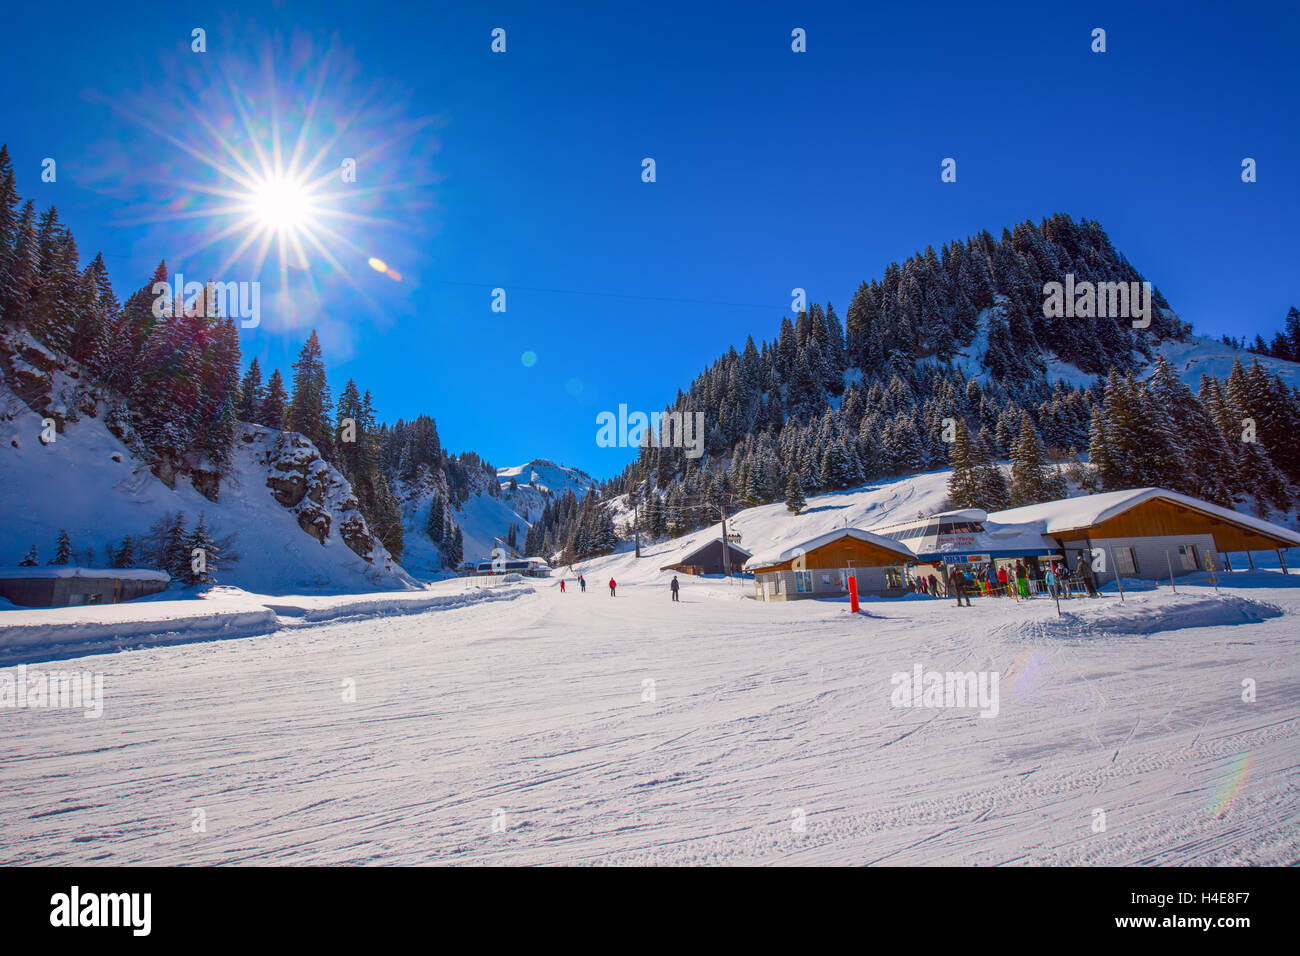 Skiers skiing on ski slopes on the top of the Hoch Ybrig resort, Switzerland - Stock Image